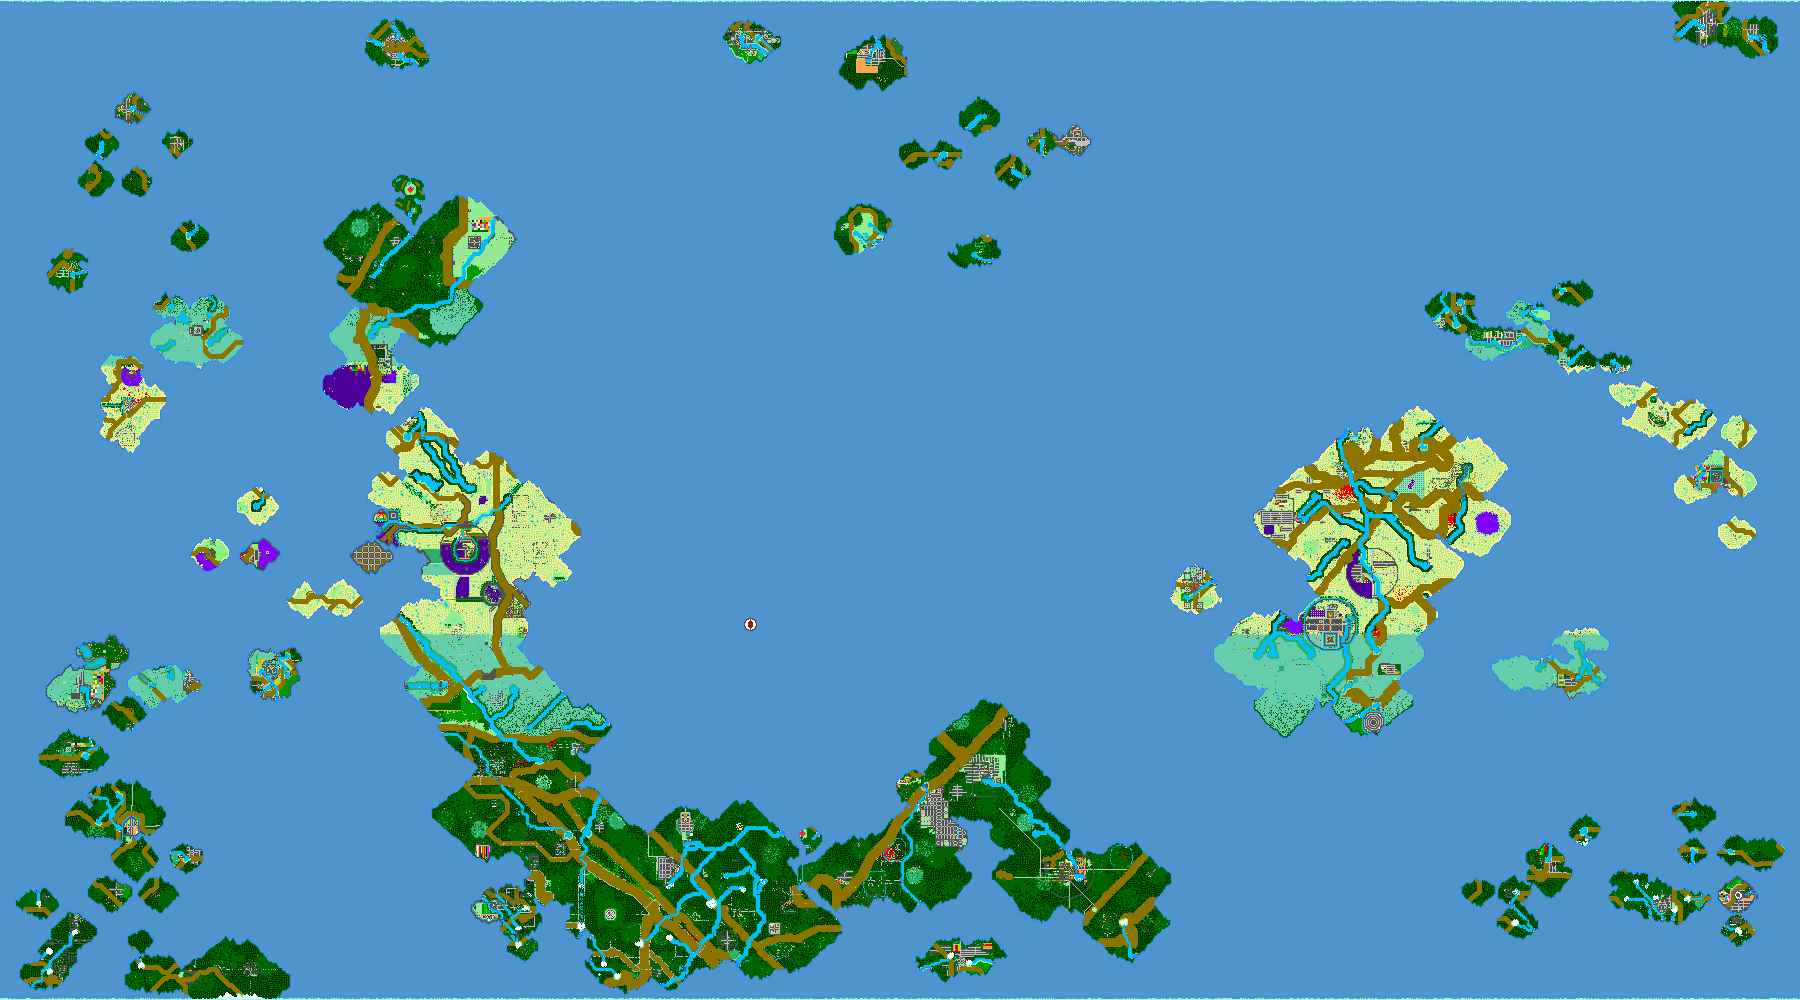 Png Map Images